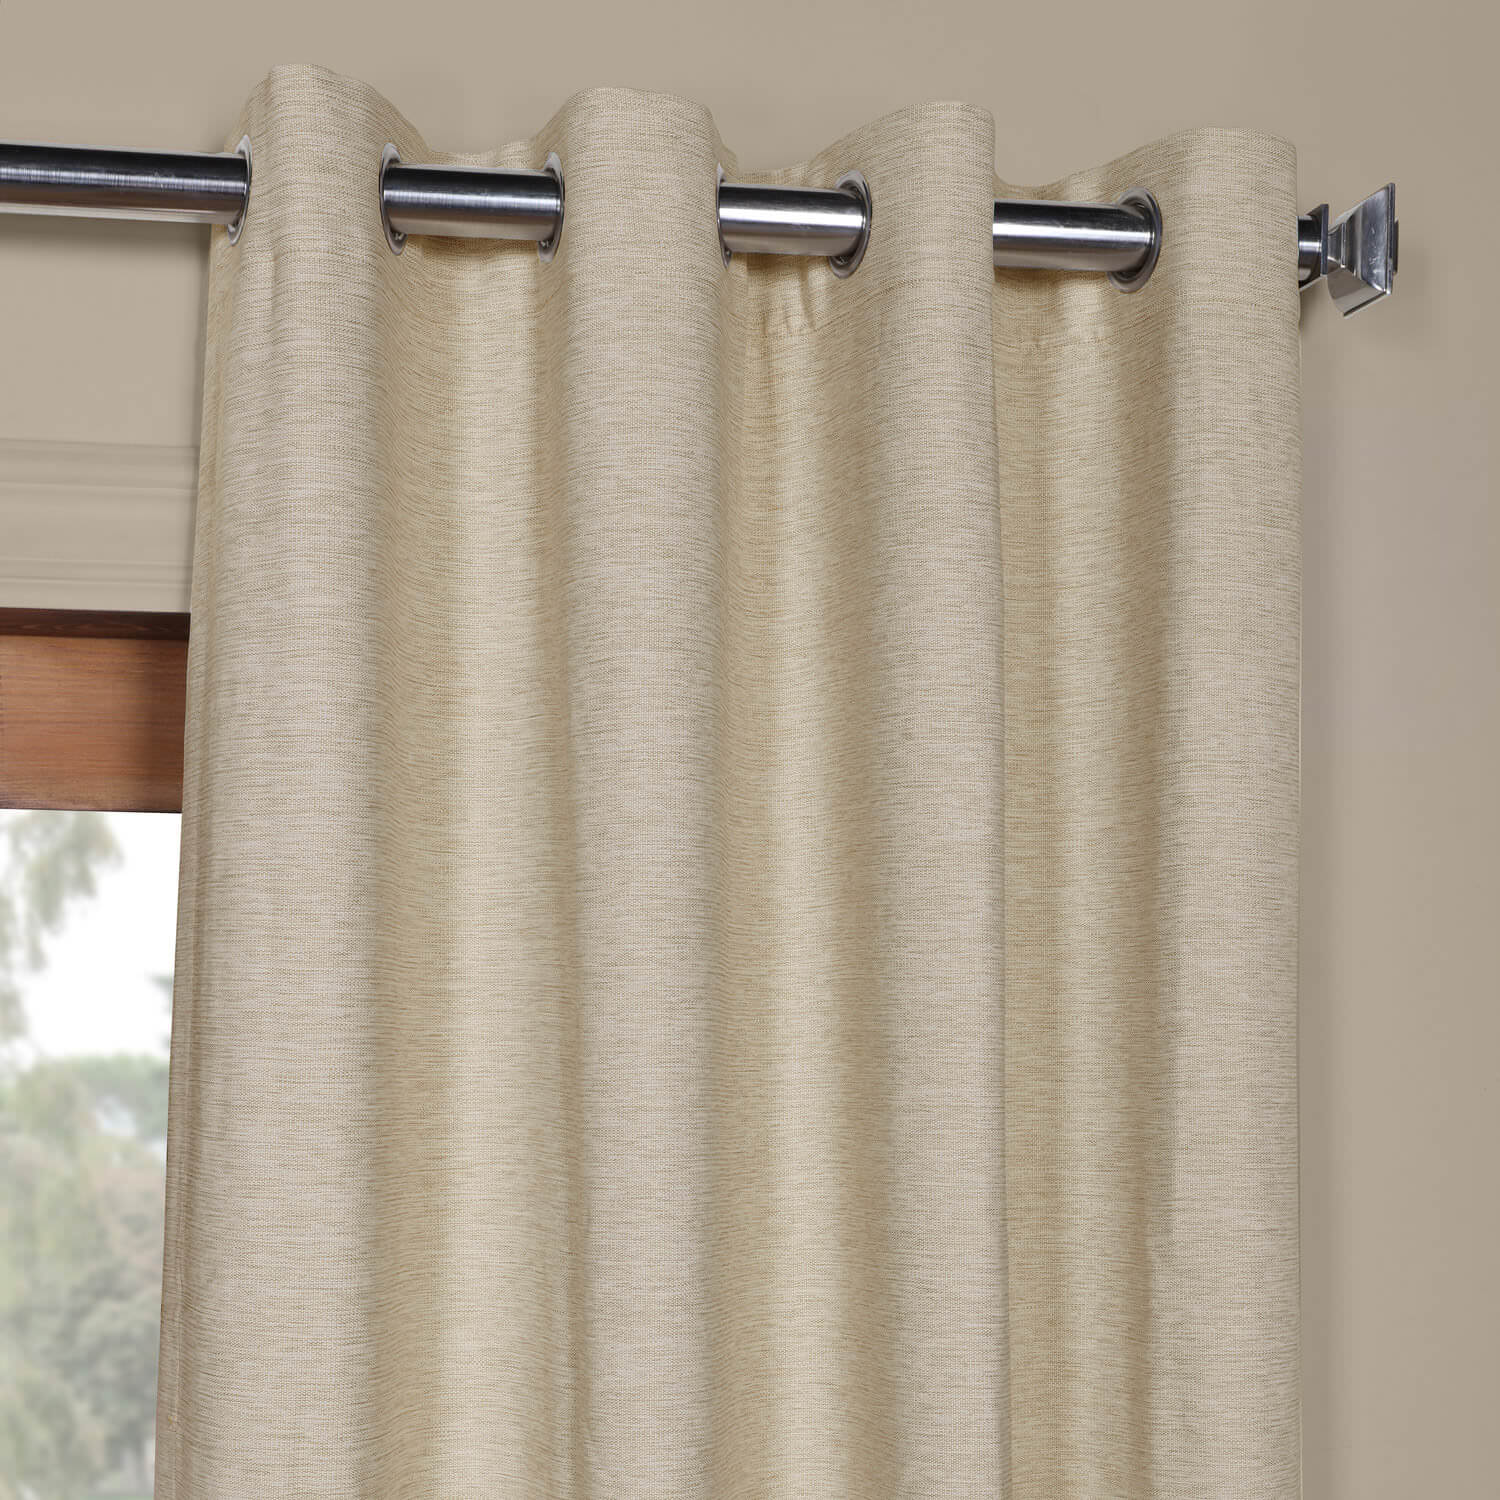 Candlelight Bellino Grommet Blackout Curtain